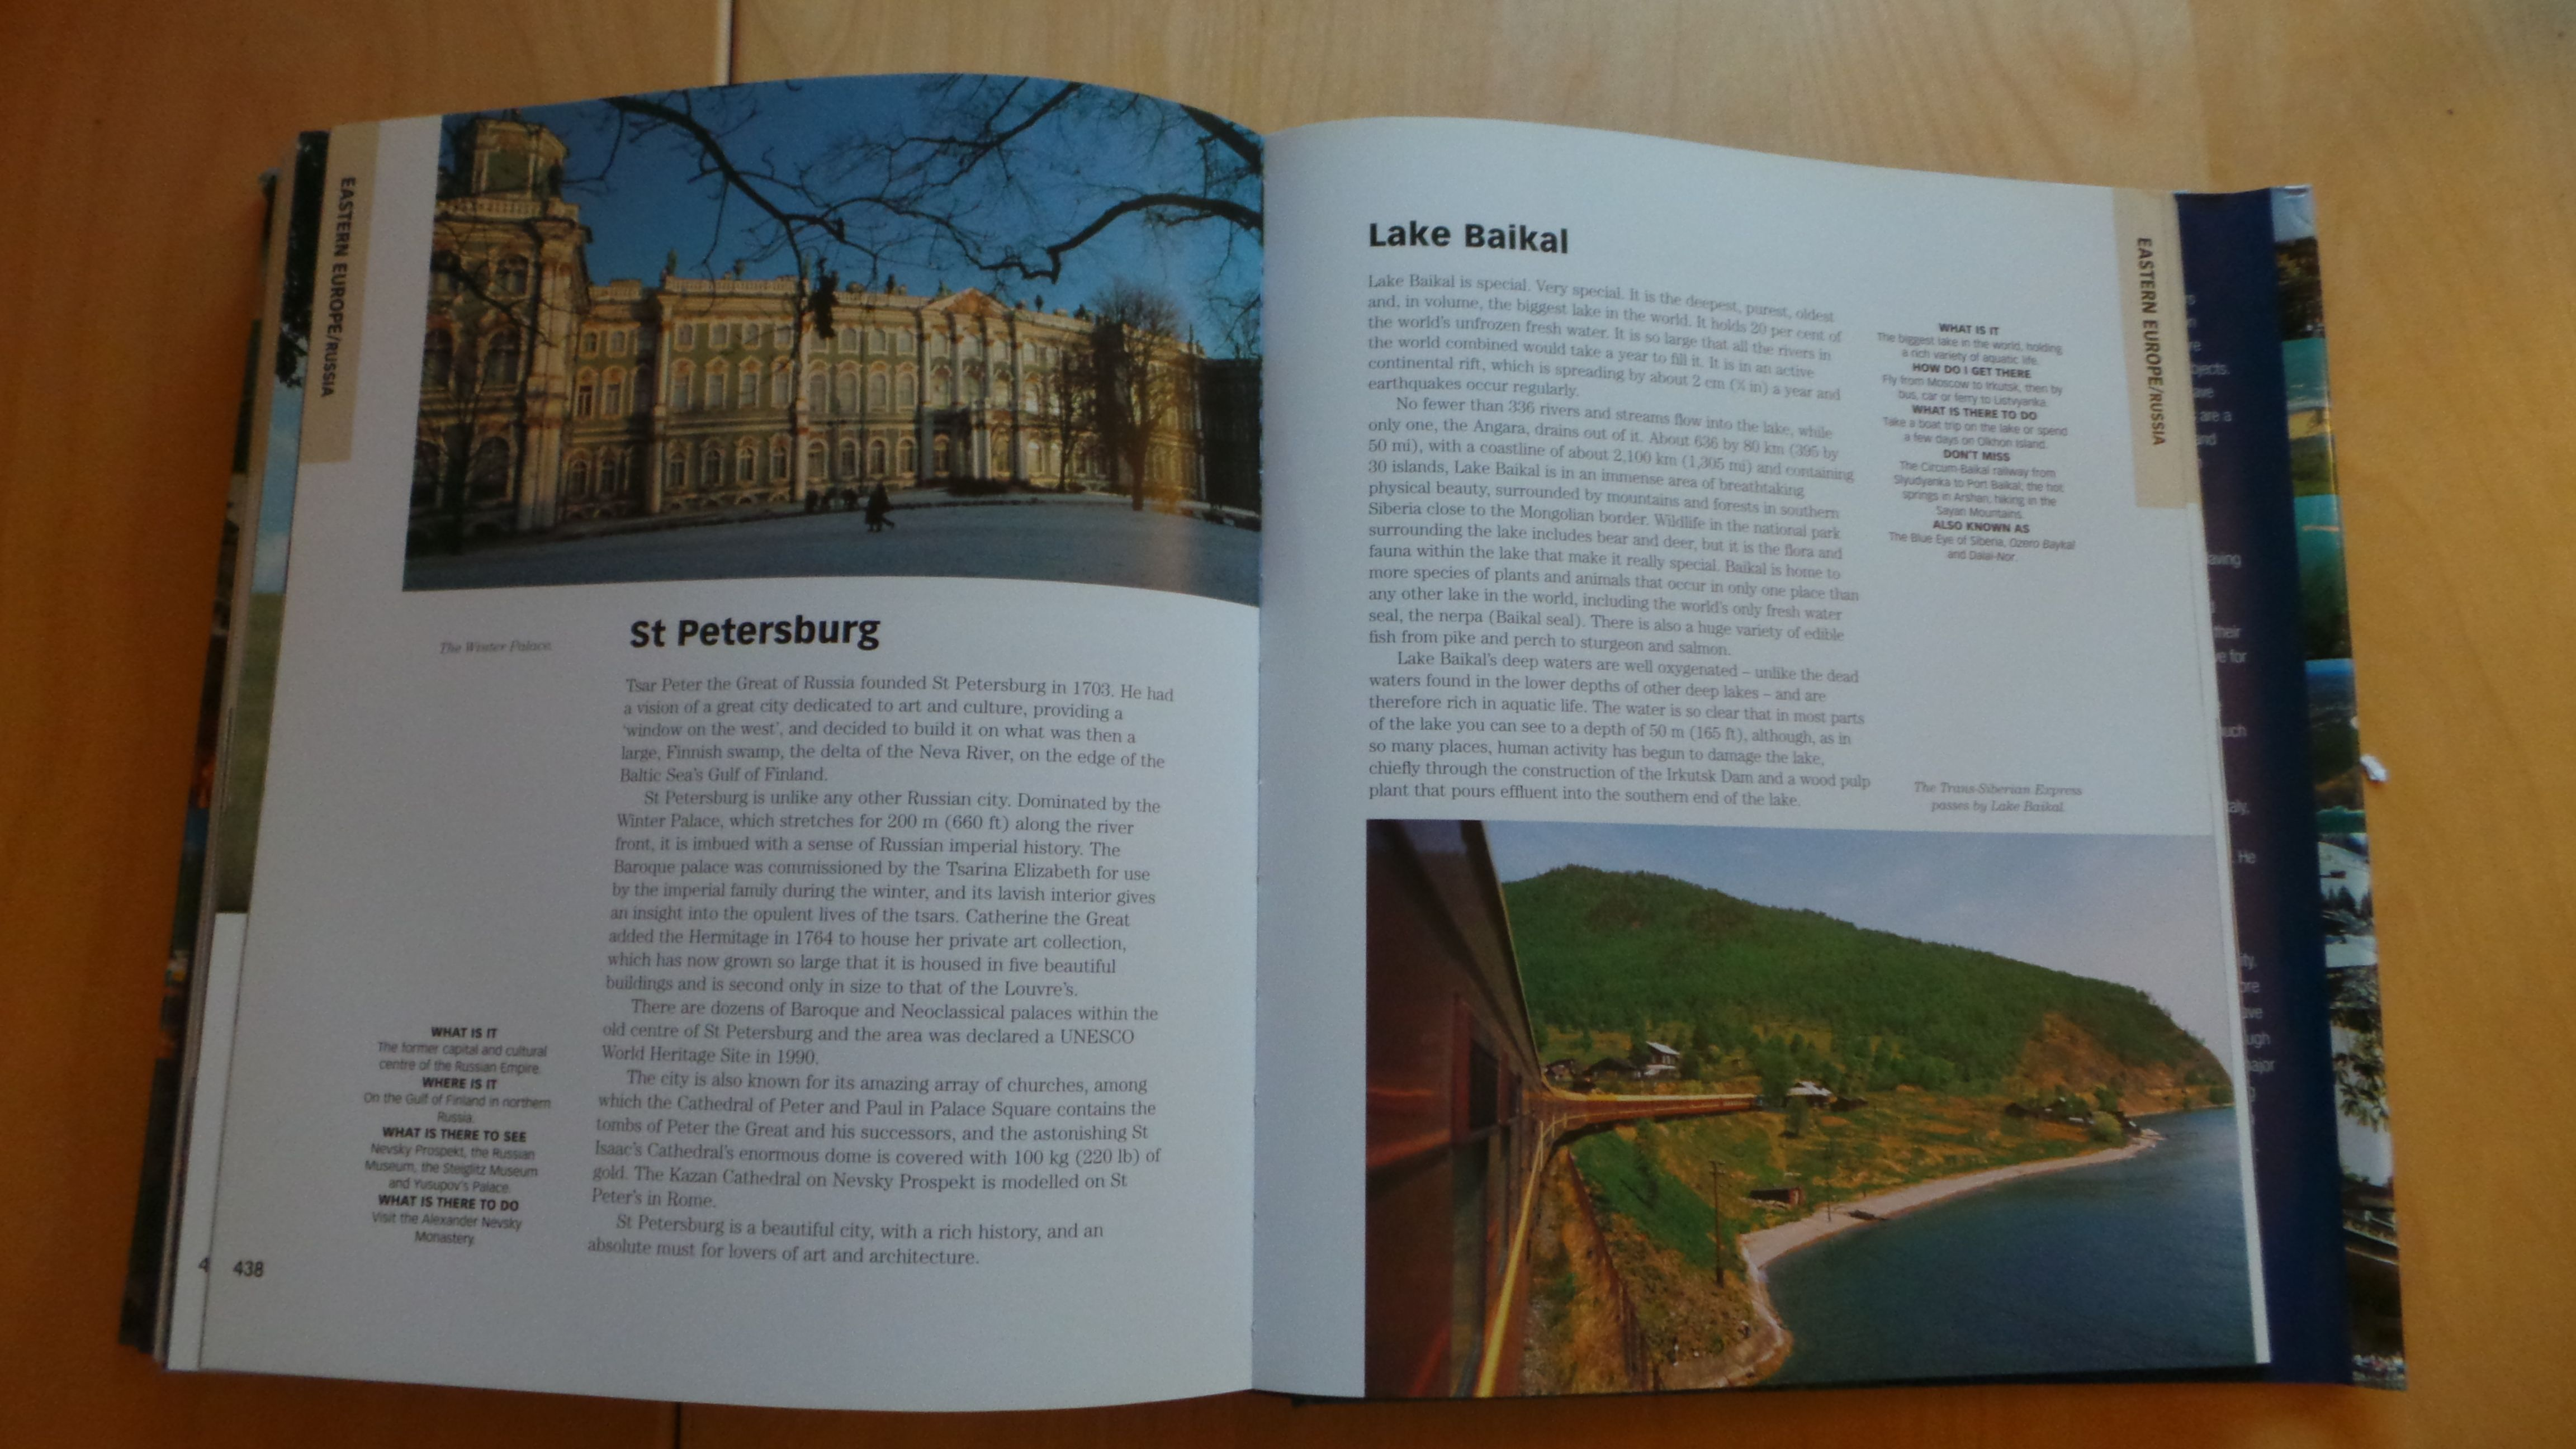 St Petersburg and Lake Baikal are also featured in this incredible book. We have done 37/501 of the destinations so just a few more to go! You can keep up to date with my travels in the 'Travel' section here www.thatideasgirl.com/category/travel.